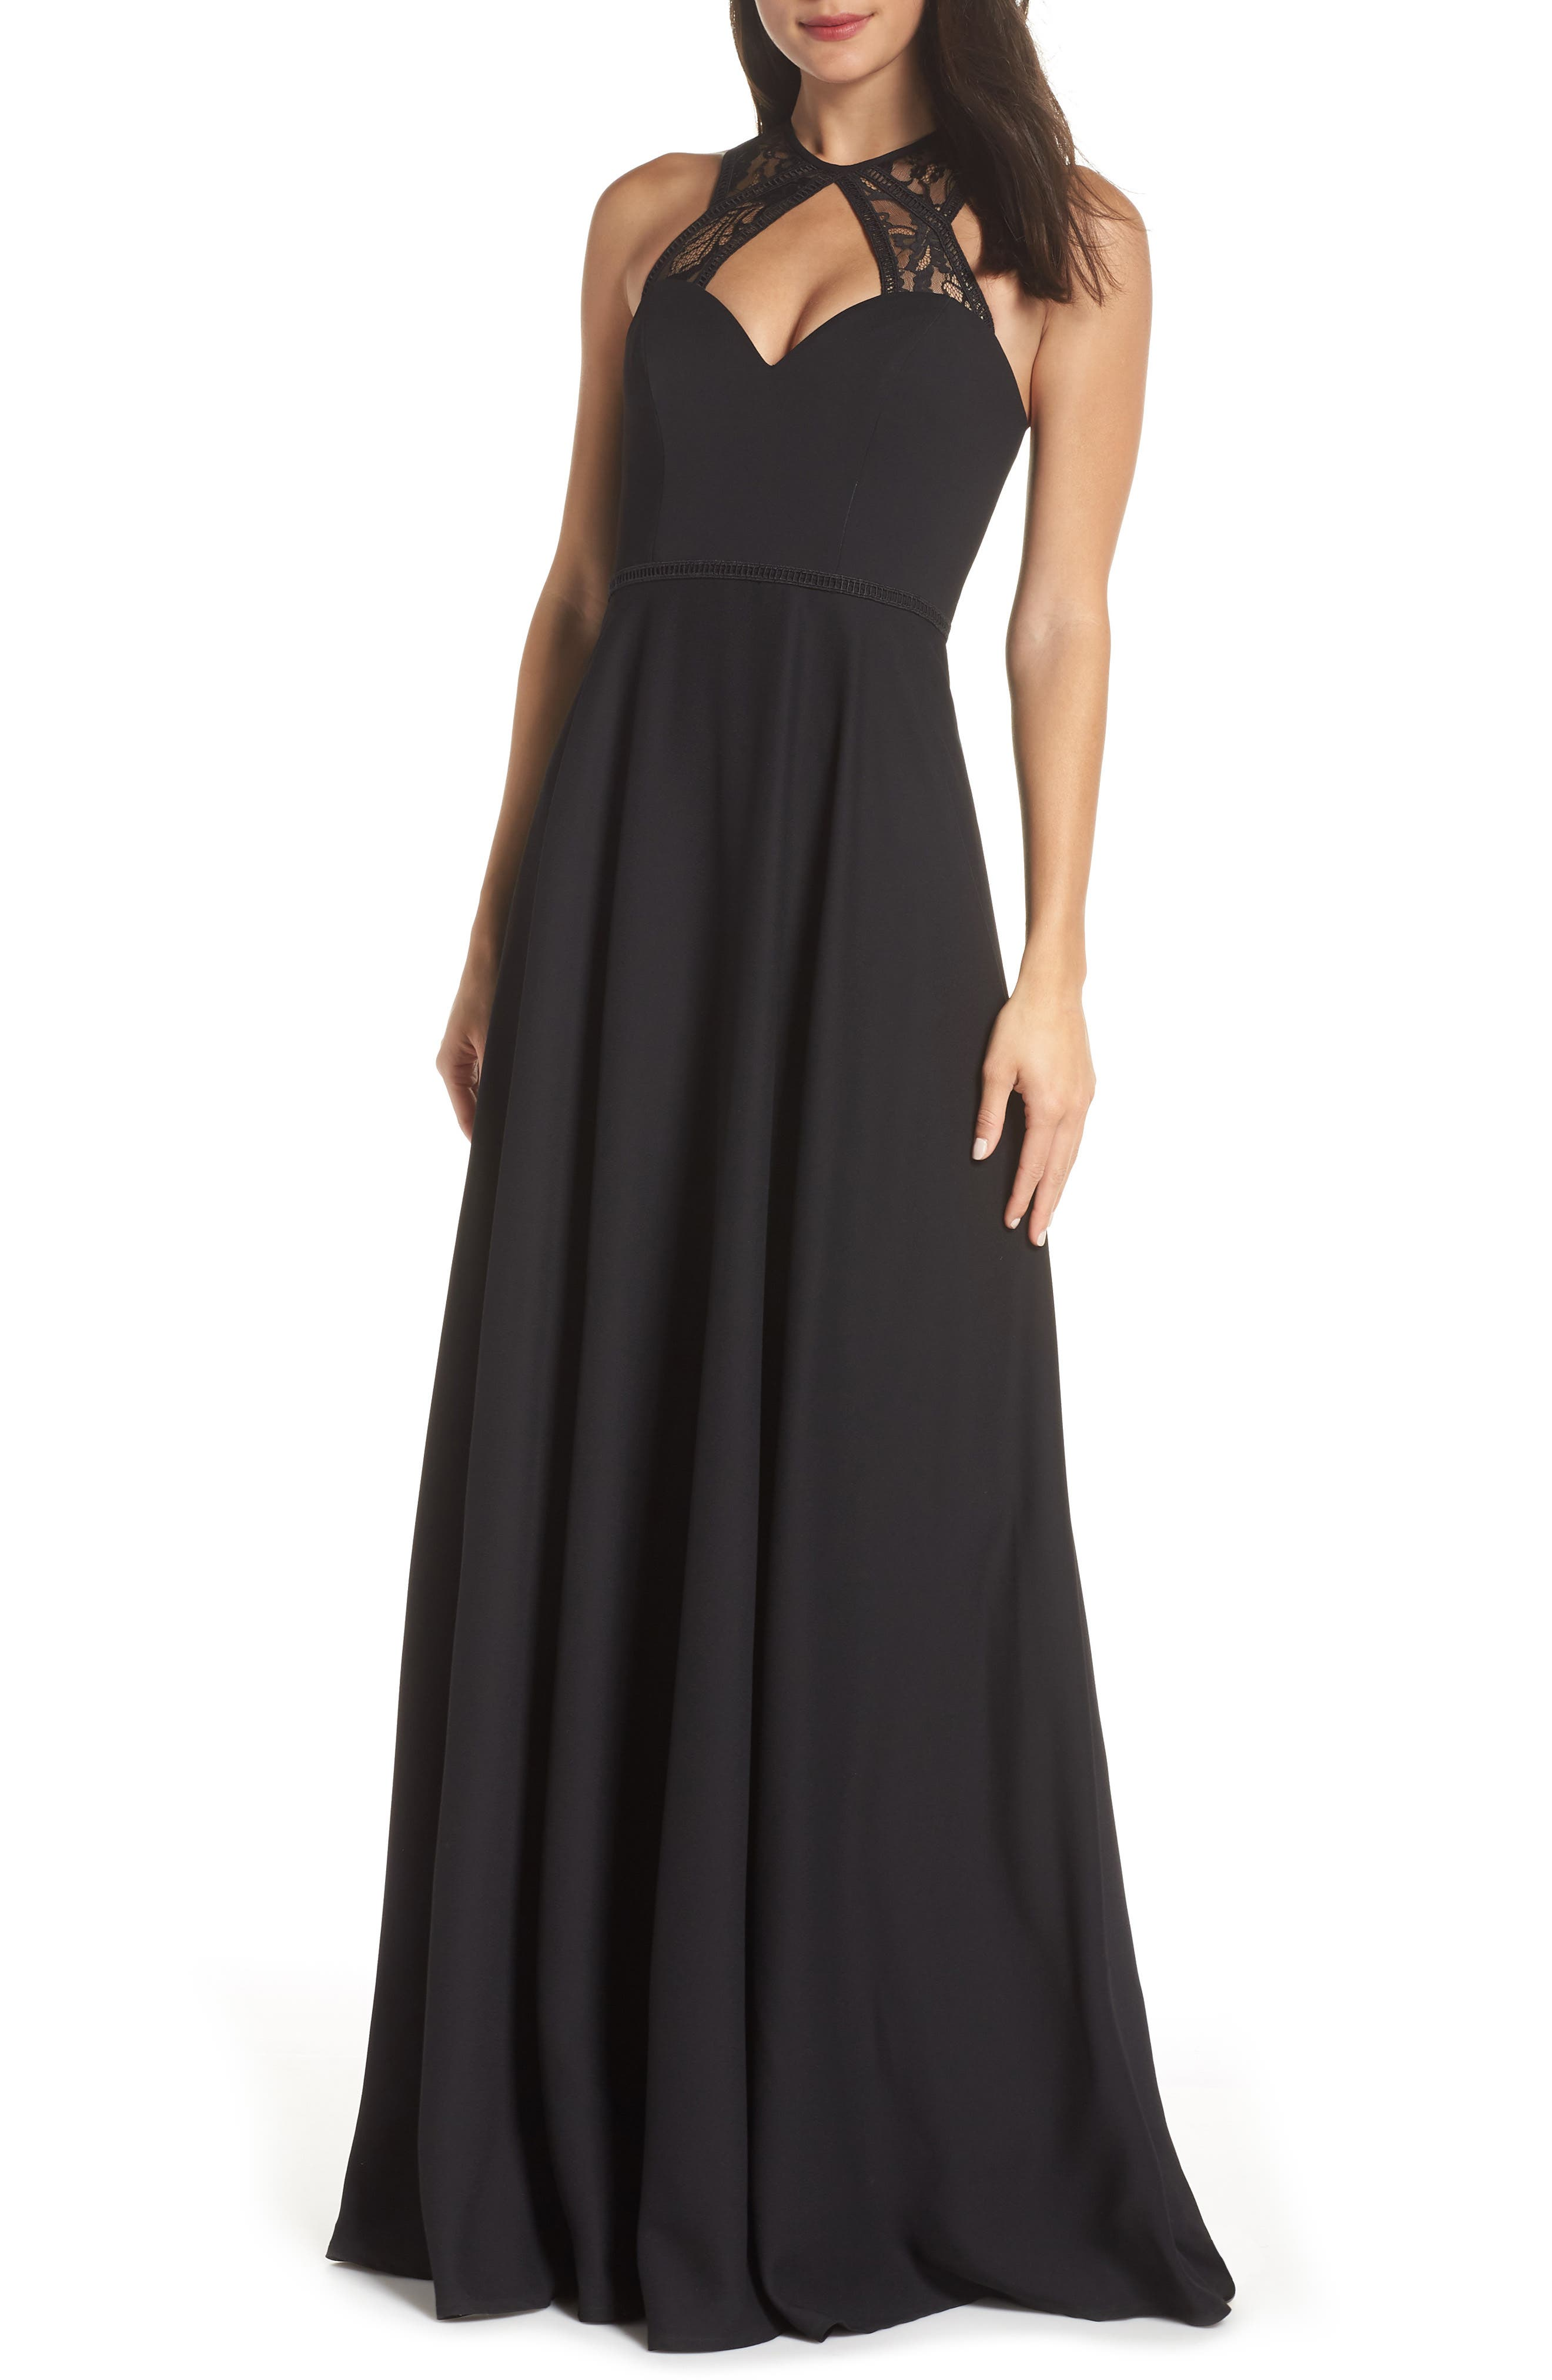 Hayley Paige Occasions Lace & Chiffon Halter Gown